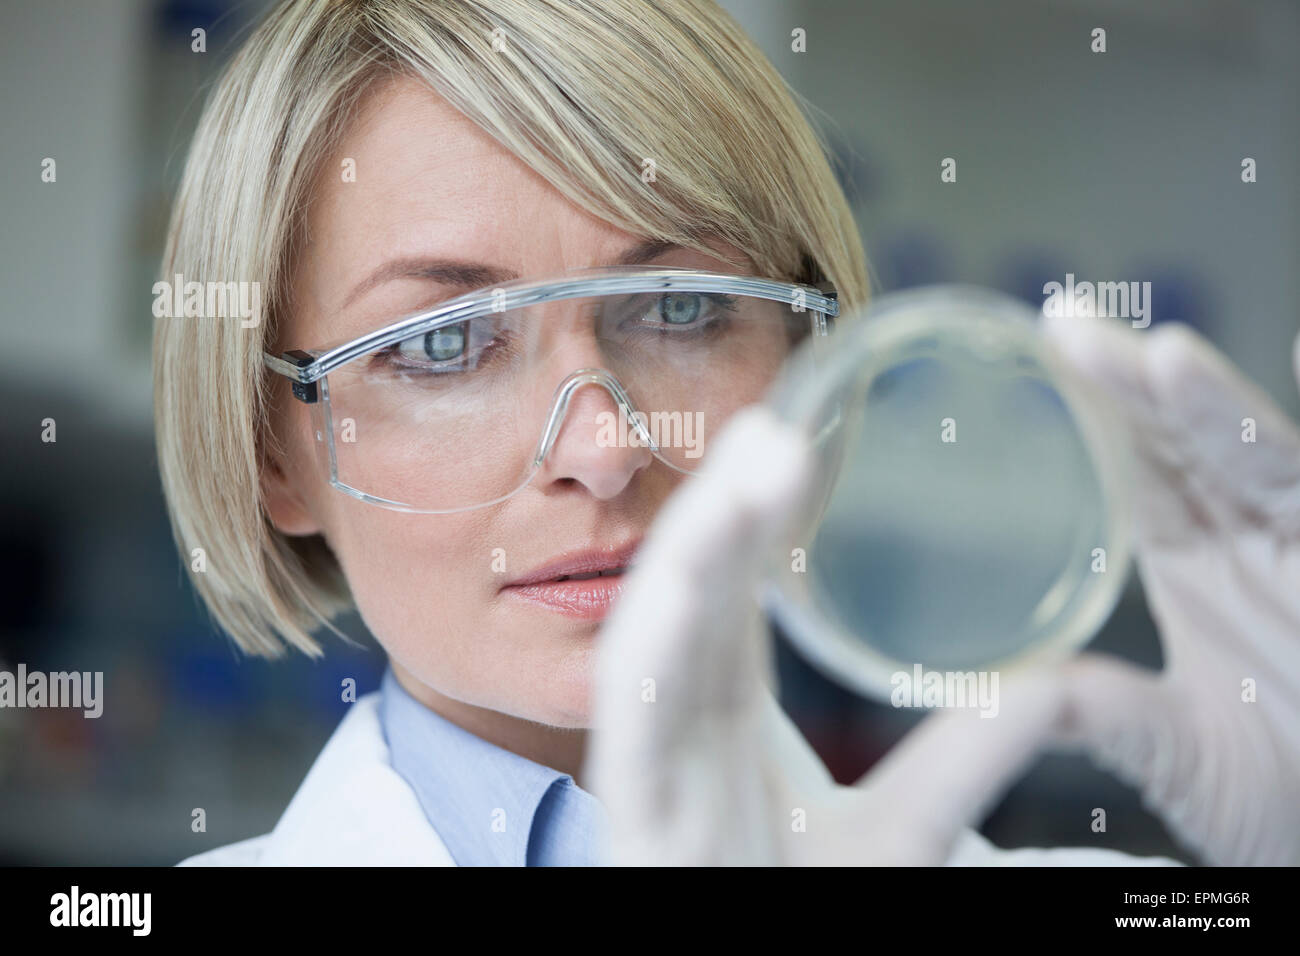 Scientist with petri dish in laboratory - Stock Image